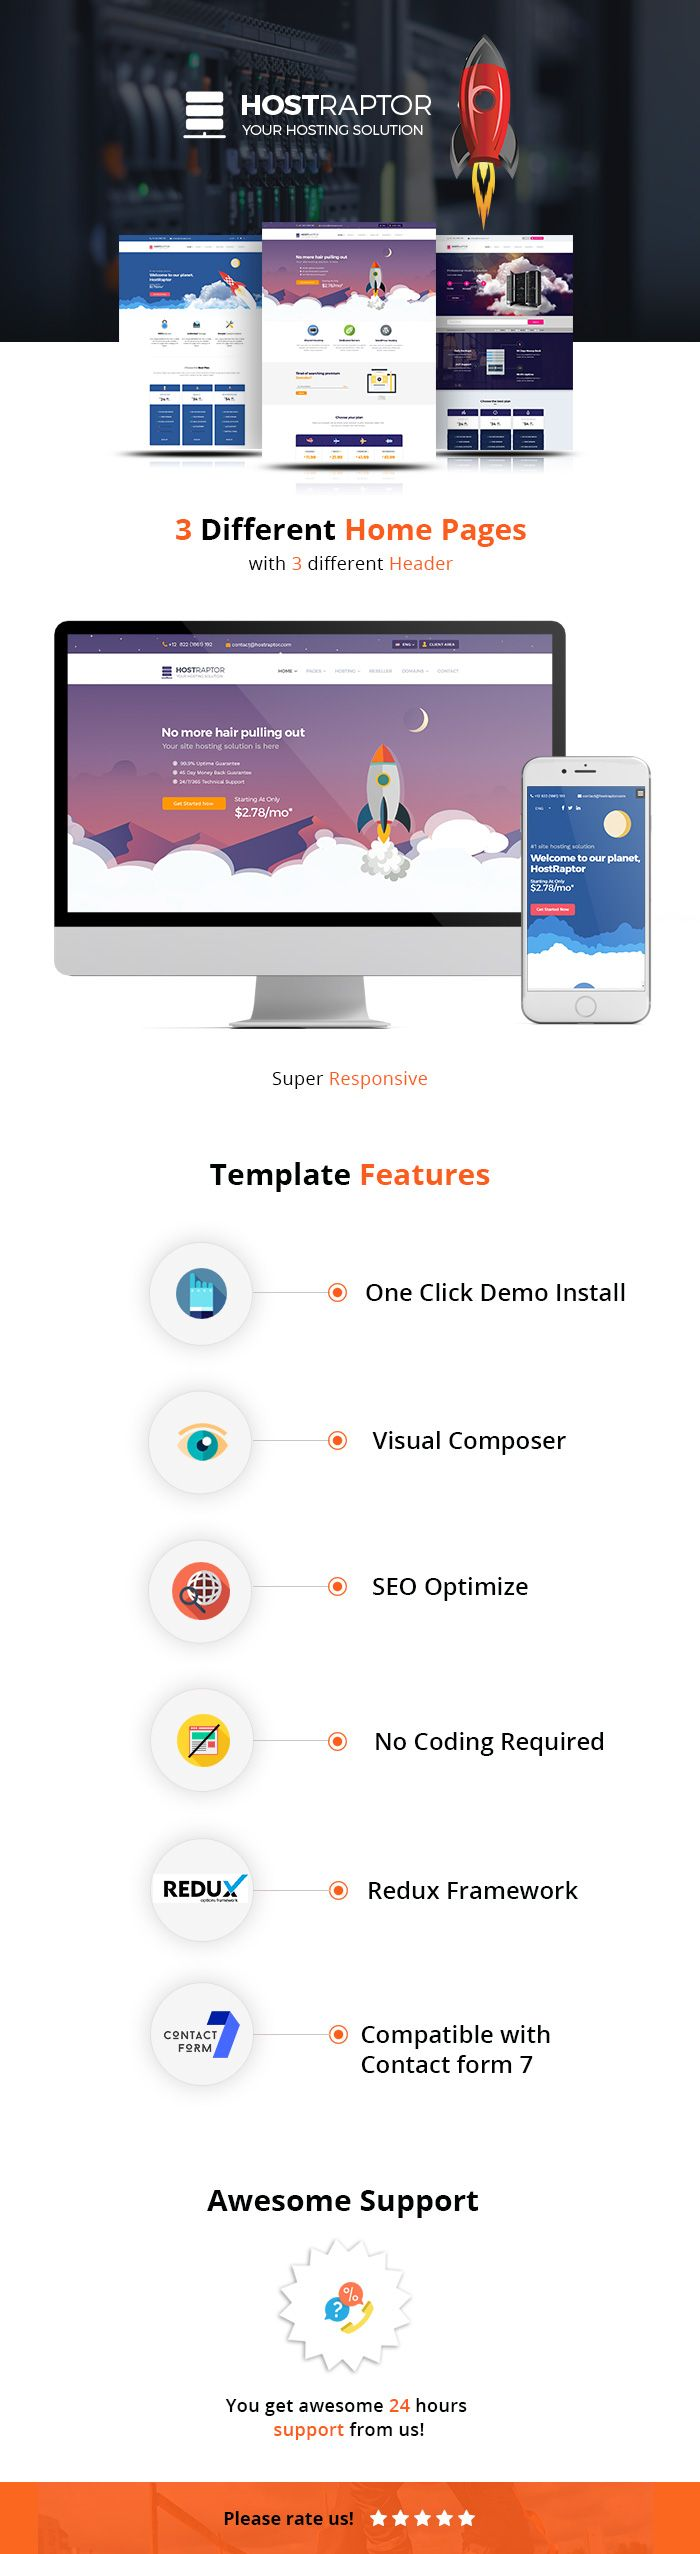 Download Hostraptor  Hosting Responsive Website Theme (Hosting)  Hostraptor is a powerful responsive and high-performance hosting WordPress theme with awesome features for a hosting Website. Its based on Bootstrap and contains a lot of components to easily make a Hosting website. We built this theme on Visual Composer a very convenient drag-n-drop PageBuilder for WordPress. It should provide you with the smoothest experience while creating your website with our theme. The WordPress theme is…